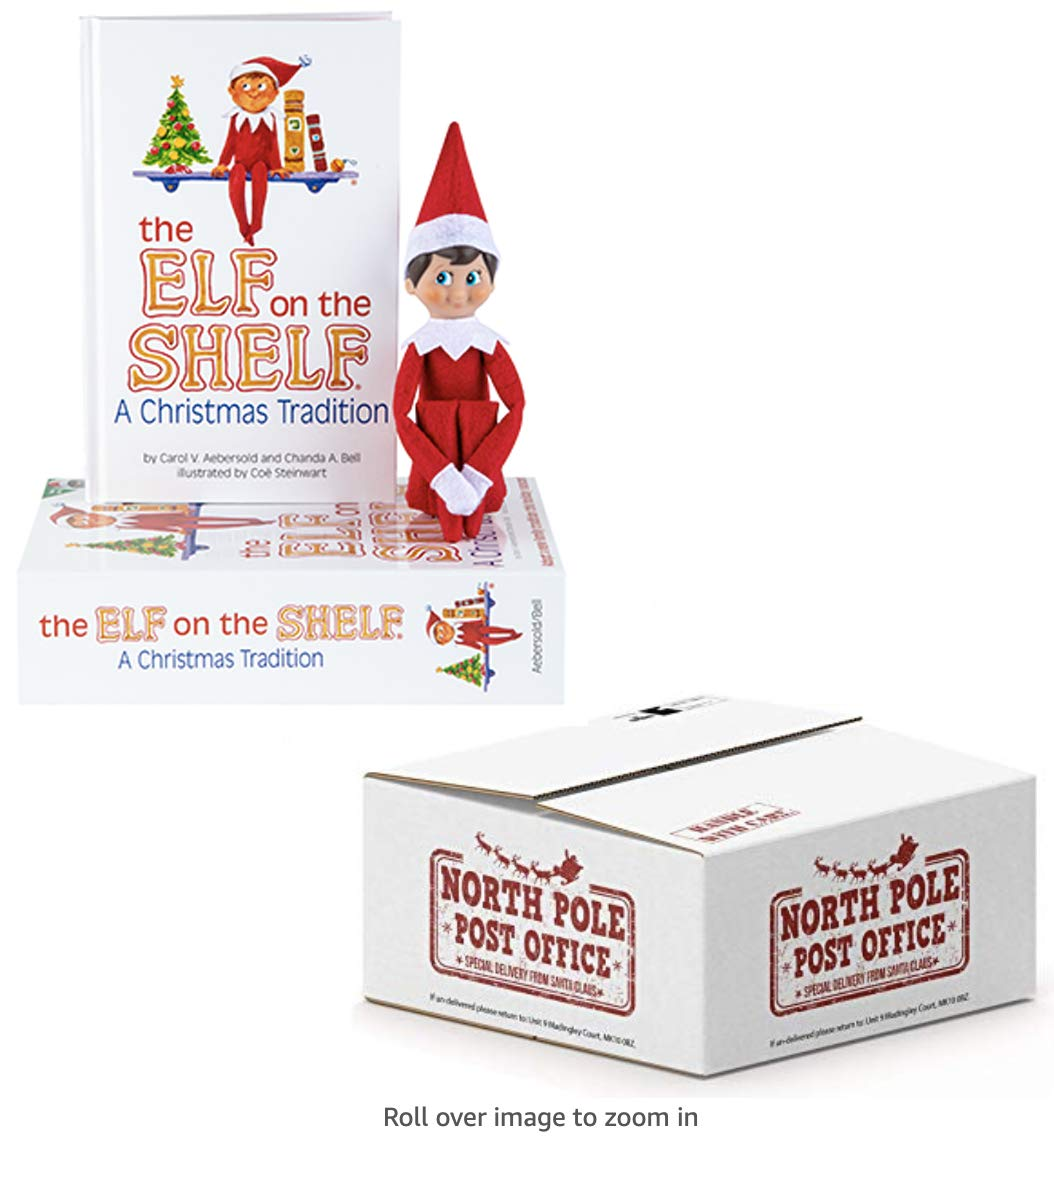 Elf on the Shelf®: Christmas Tradition with a Blue-Eyed Boy Scout Elf in Red with Book - Direct from North Pole Post Office